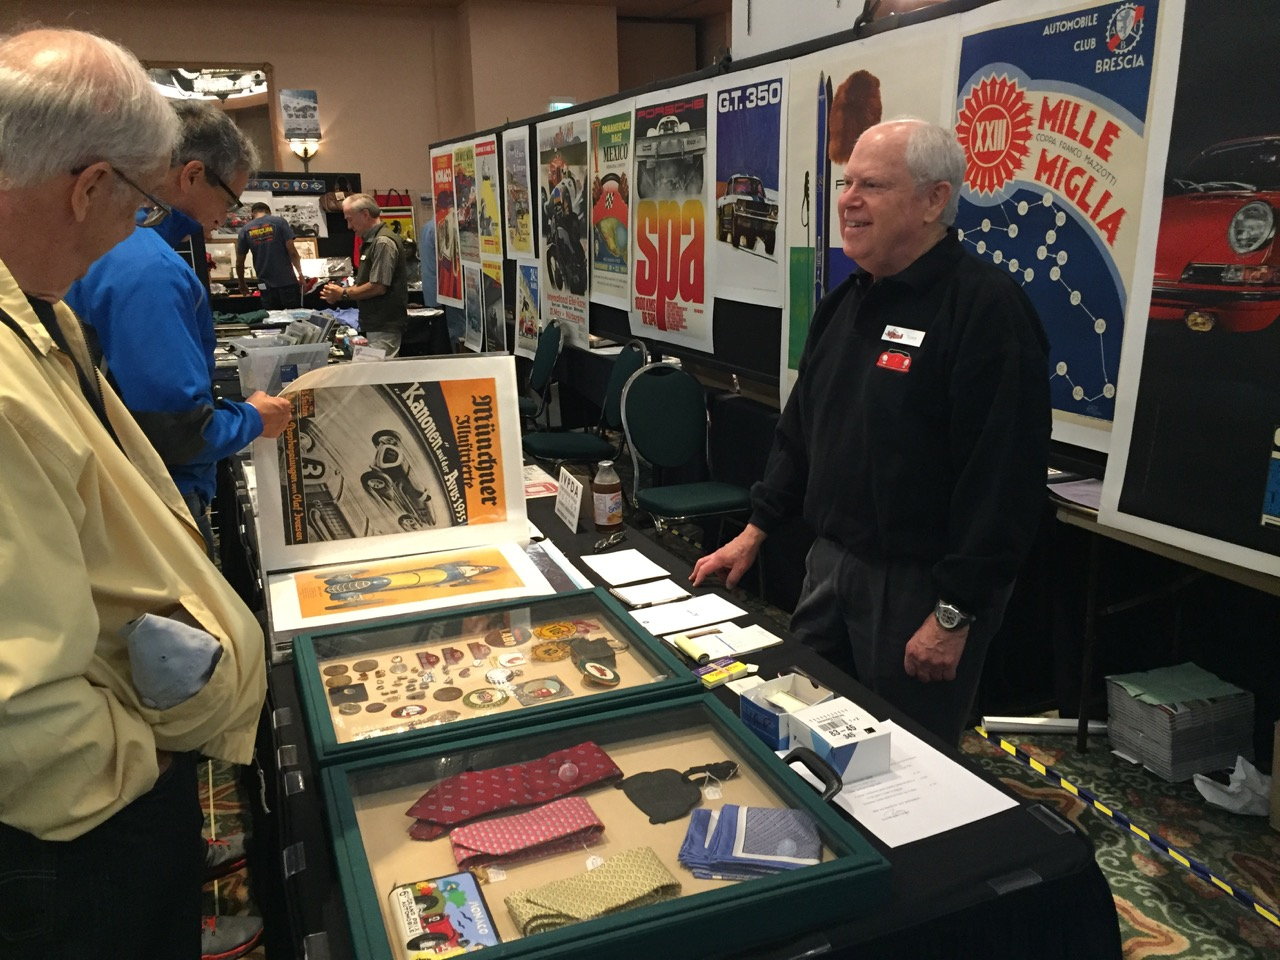 Tony Singer greets customers at Automobilia show and sale | Larry Crane photos